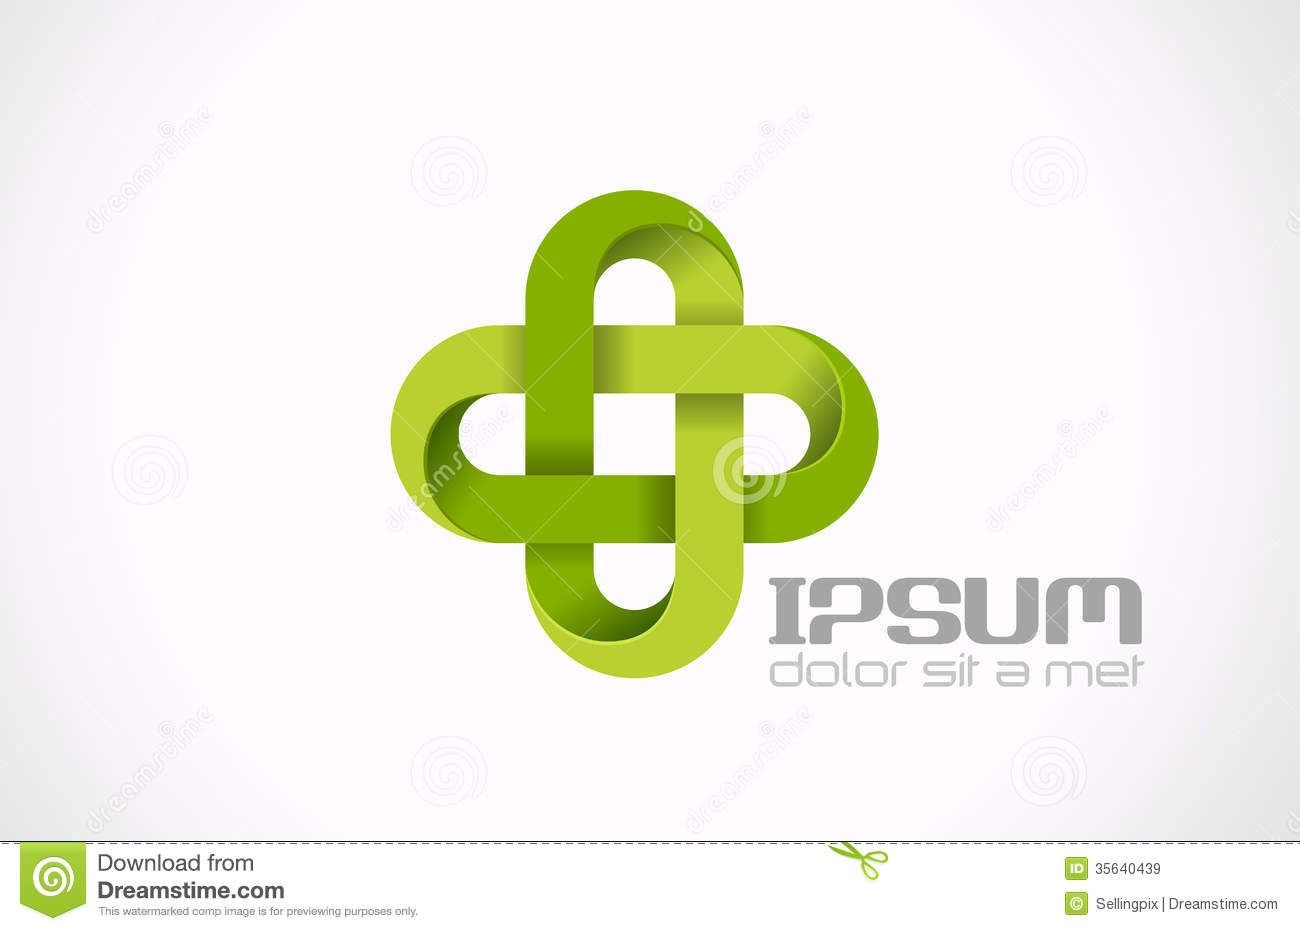 pharmacy logos free - Google Search | Pharmacy | Pinterest ... for Logo Design Samples Free Download  193tgx